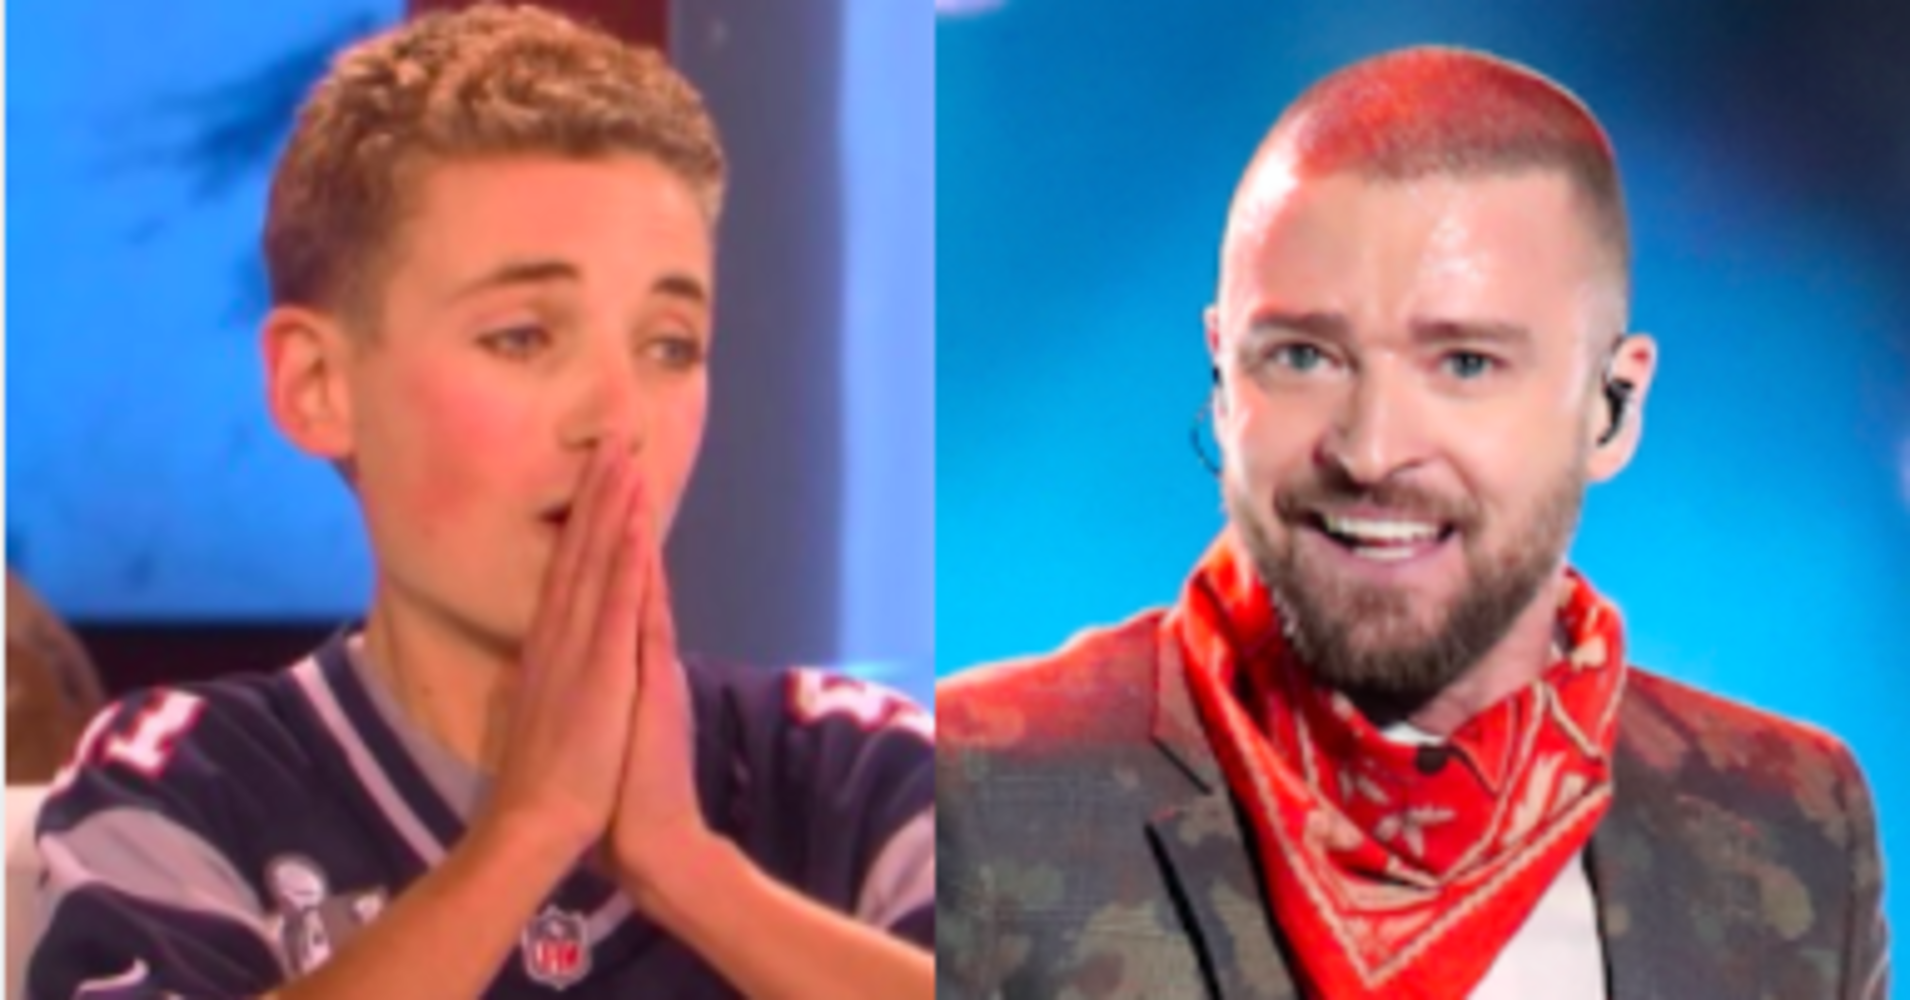 Justin Timberlake Brings Selfie Kid To Tears With An Even Better Surprise